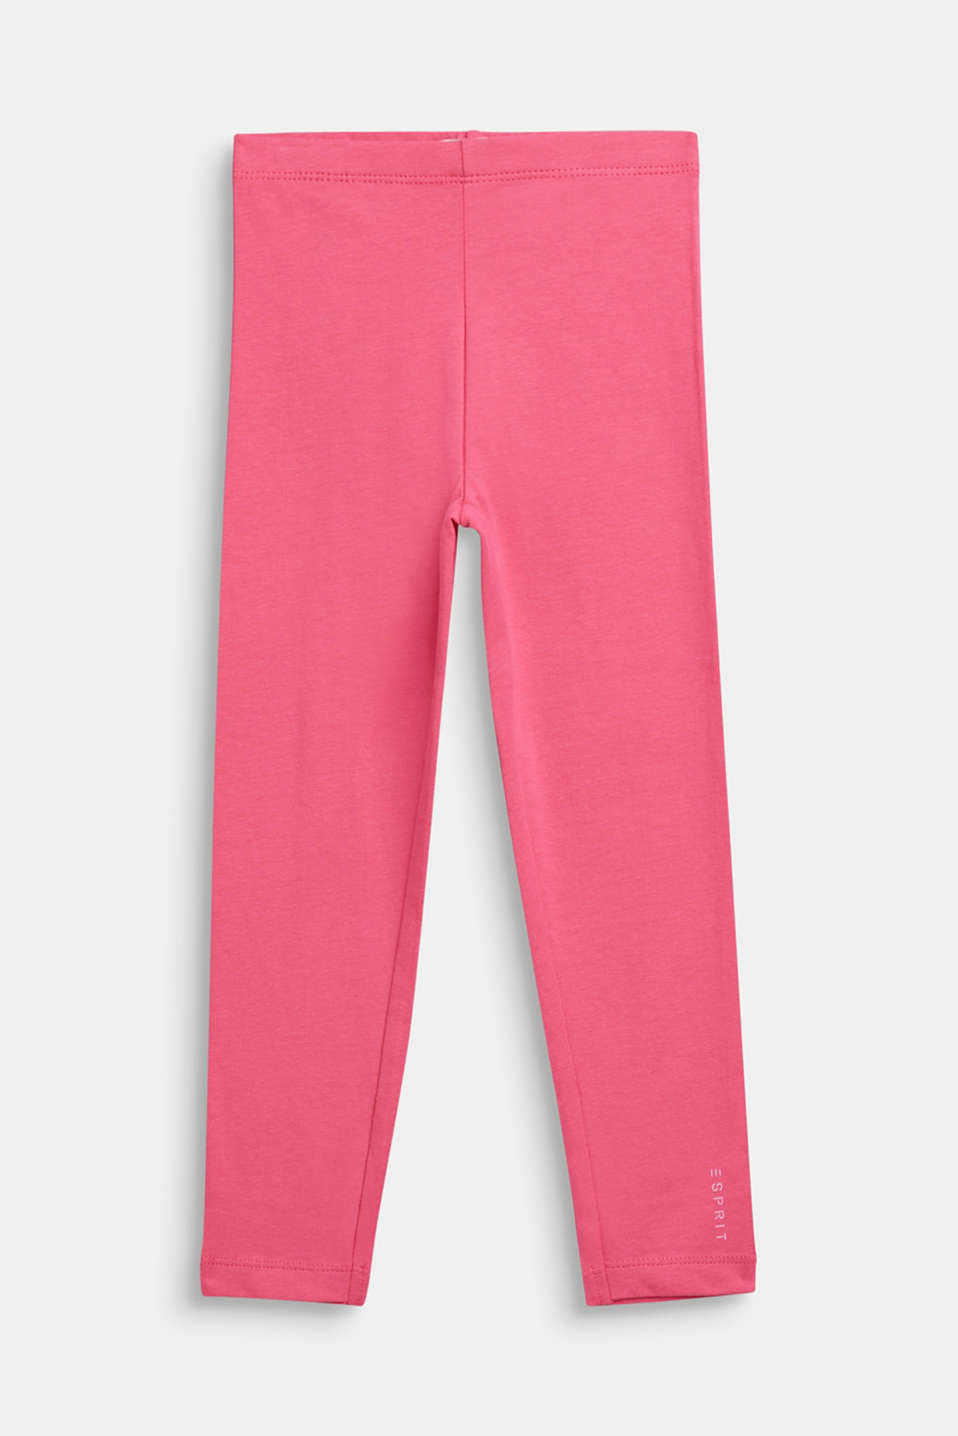 Esprit - Leggings en coton stretch